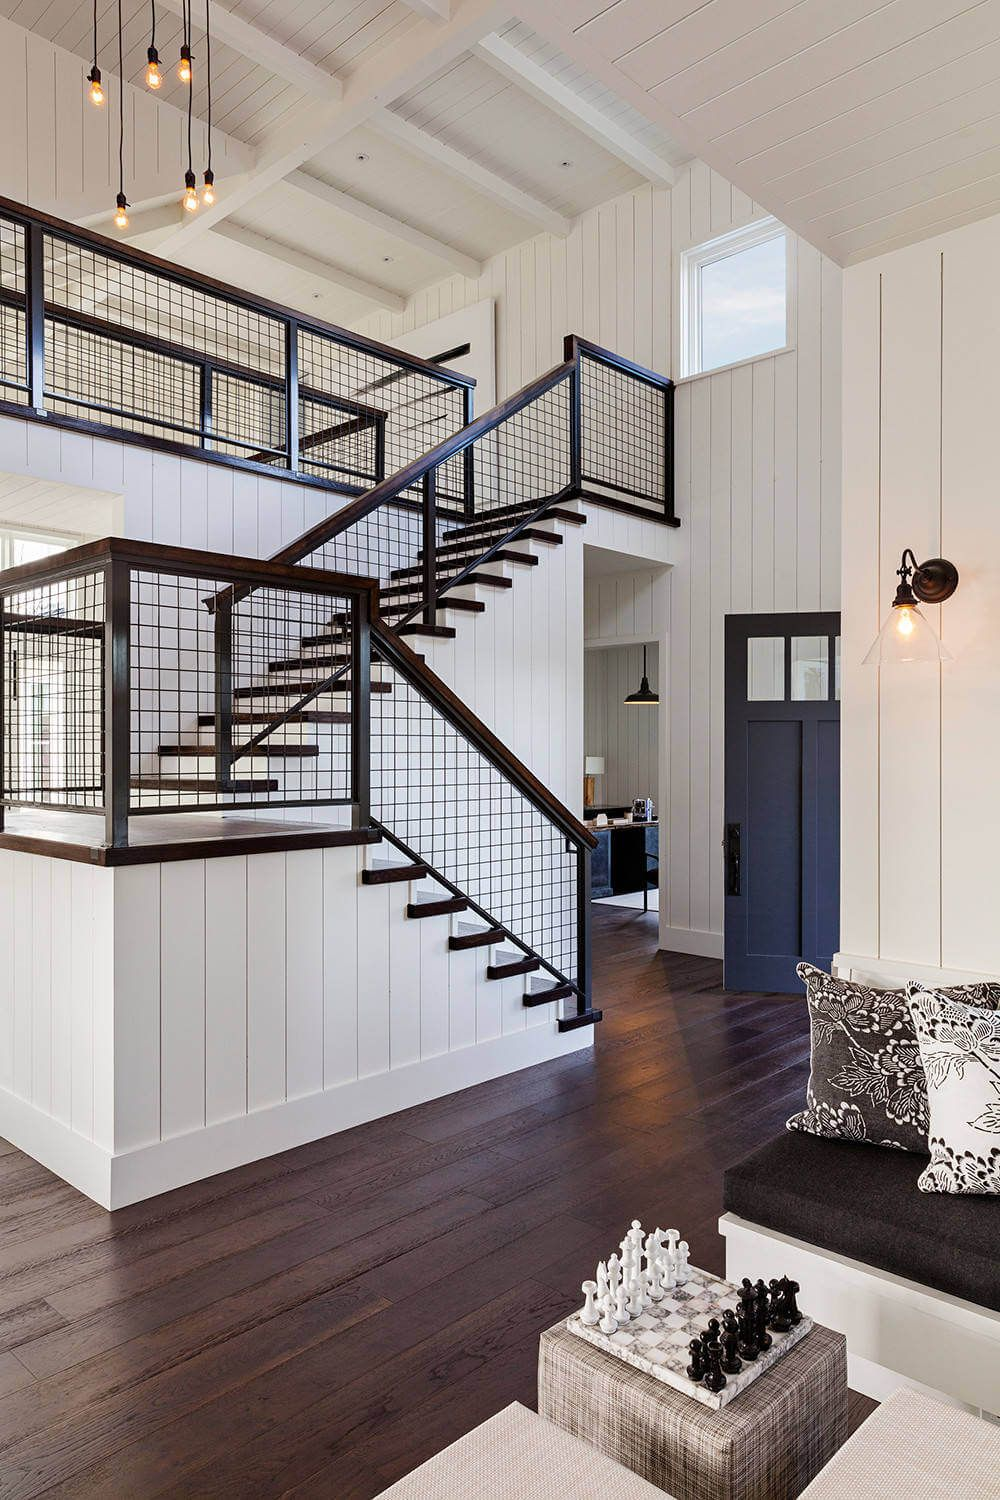 Healdsburg House By Dotter Solfjeld Architecture Design | Home Stair Railing Design | Grill | Living Room | Inside | Small House | Outside Staircase Grill